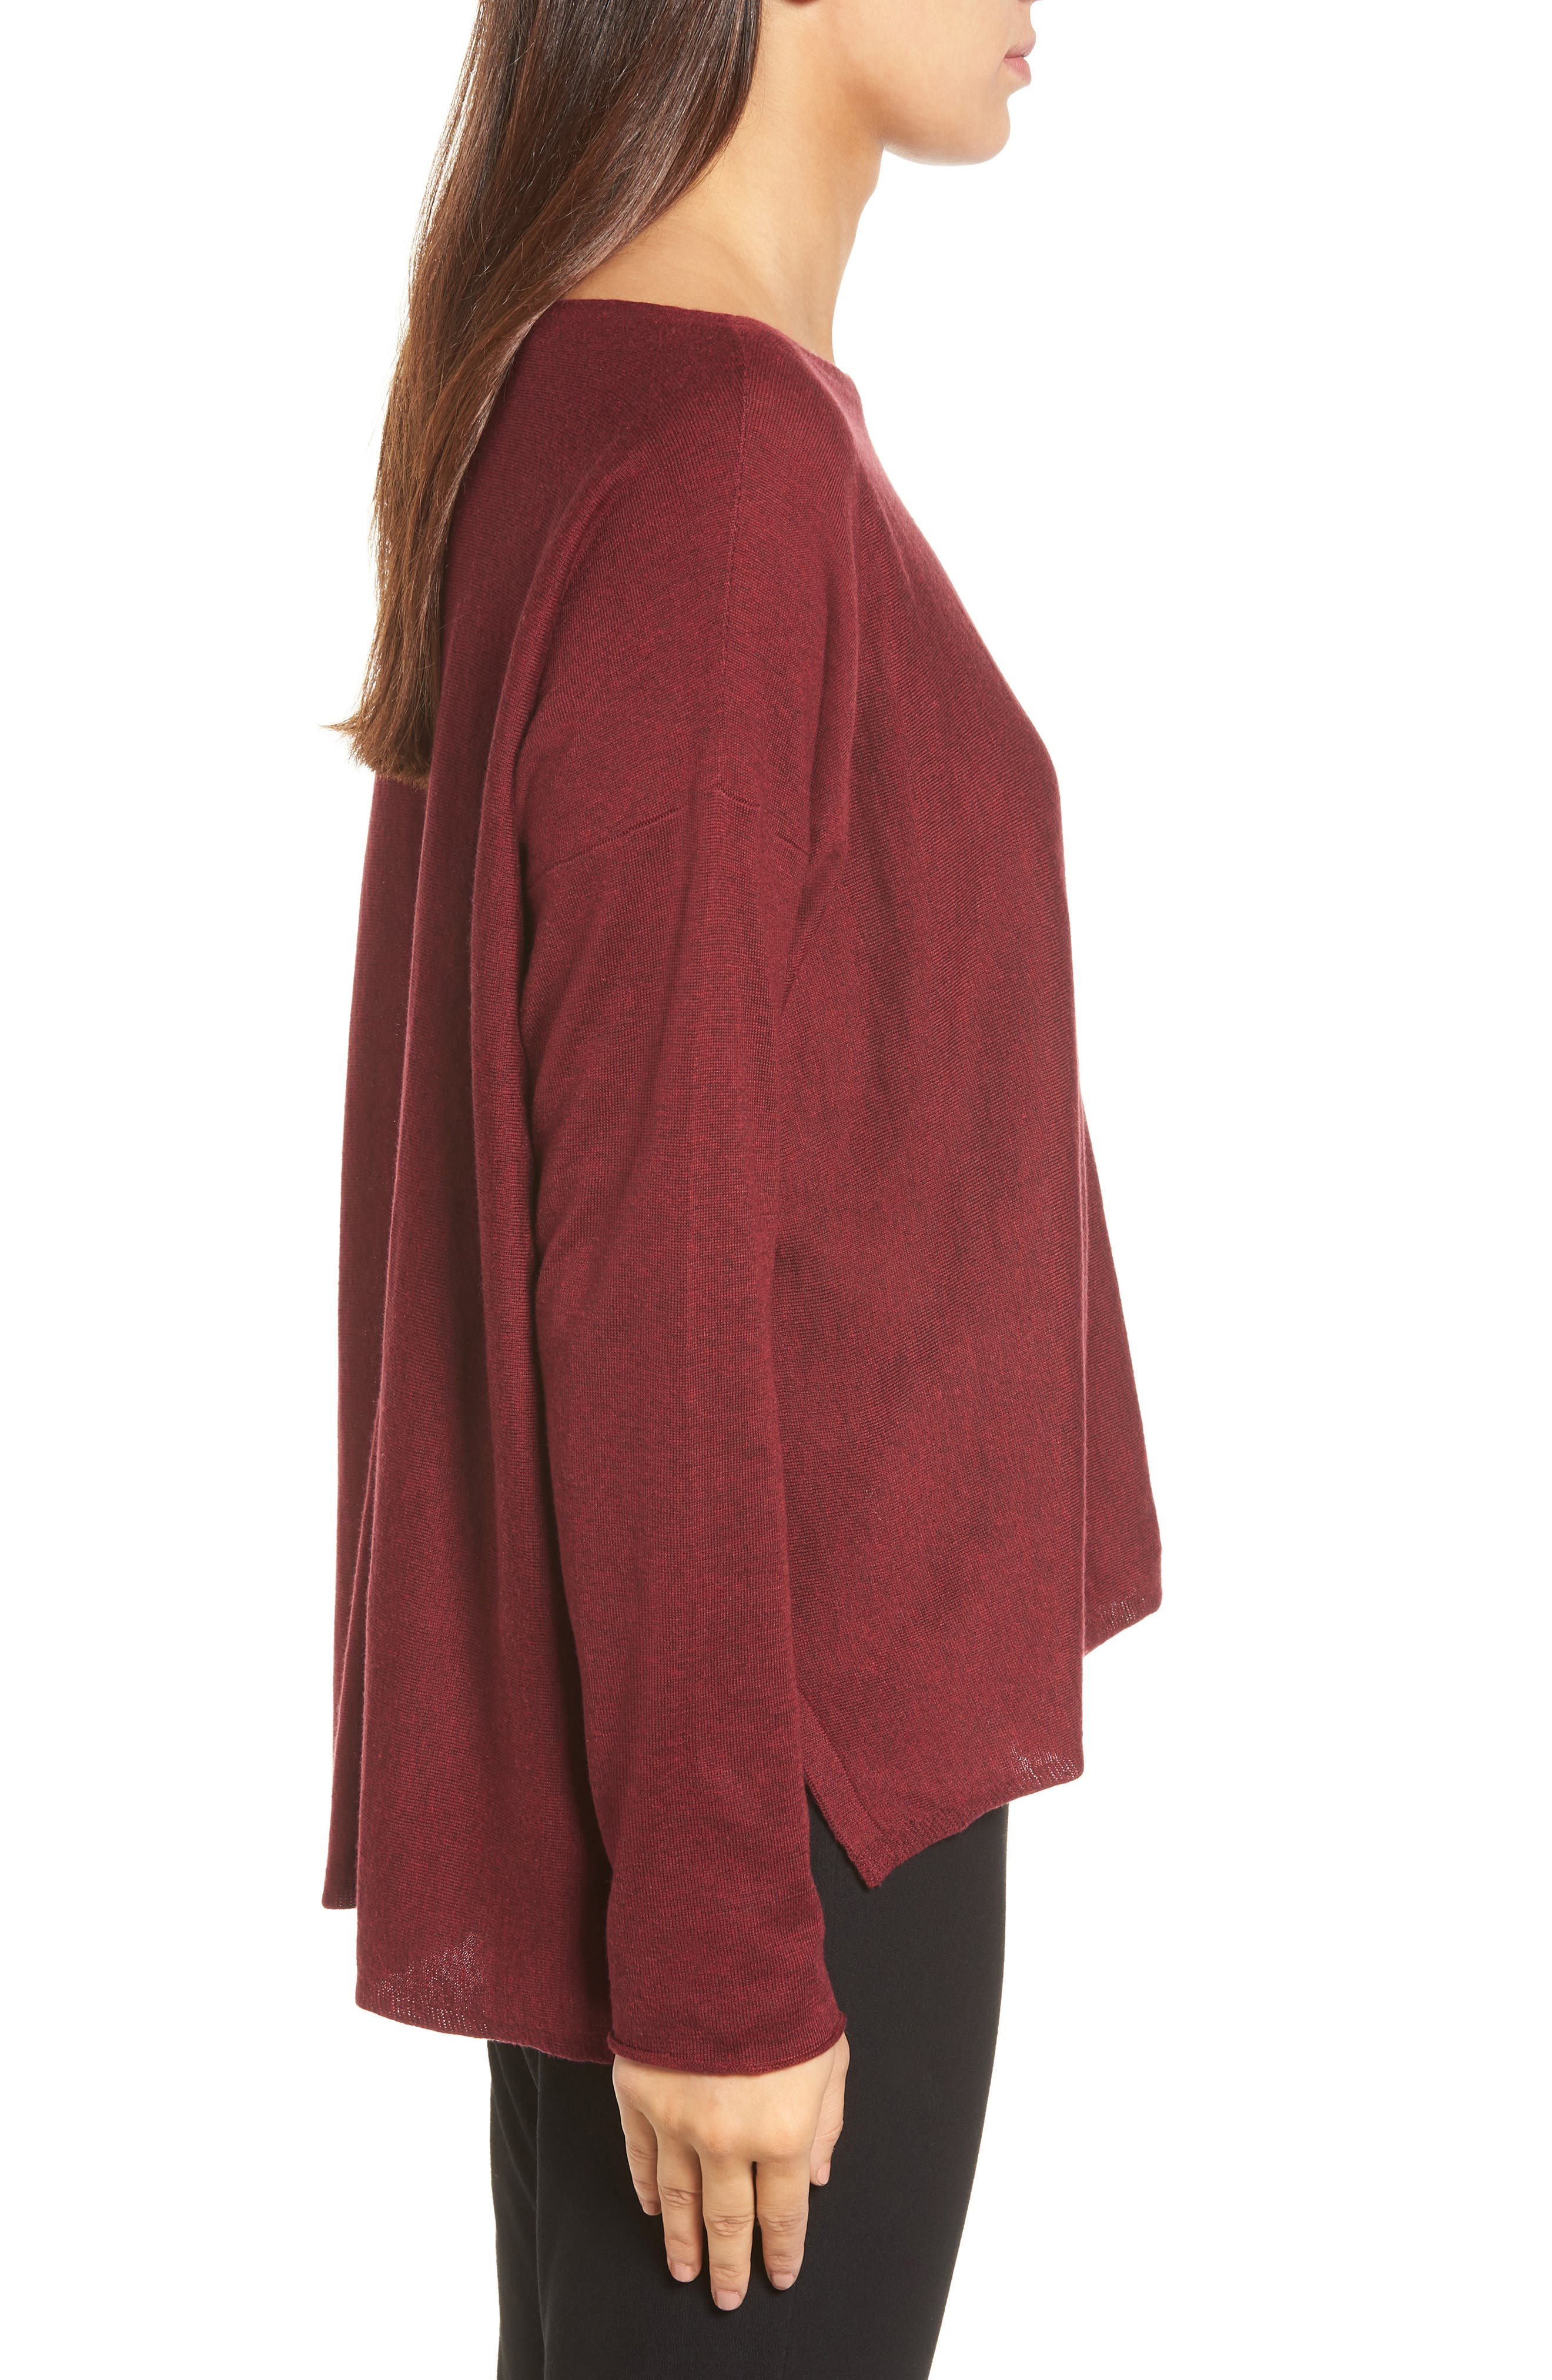 Tencel<sup>®</sup> Lyocell Blend High/Low Sweater,                             Alternate thumbnail 18, color,